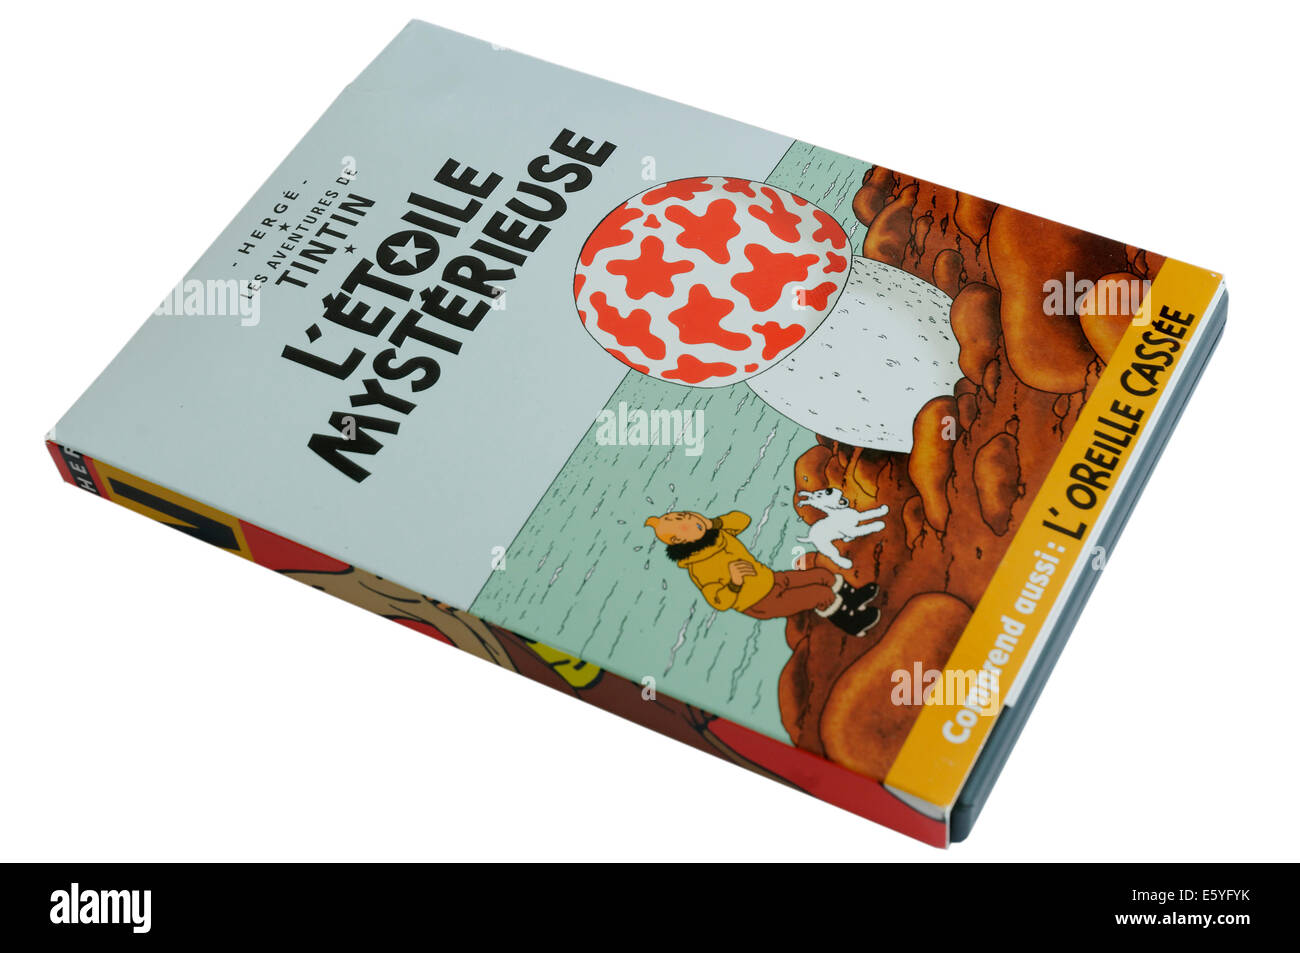 Tintin DVD L'Etoile Mysterieuse (The Shooting Star) - Stock Image